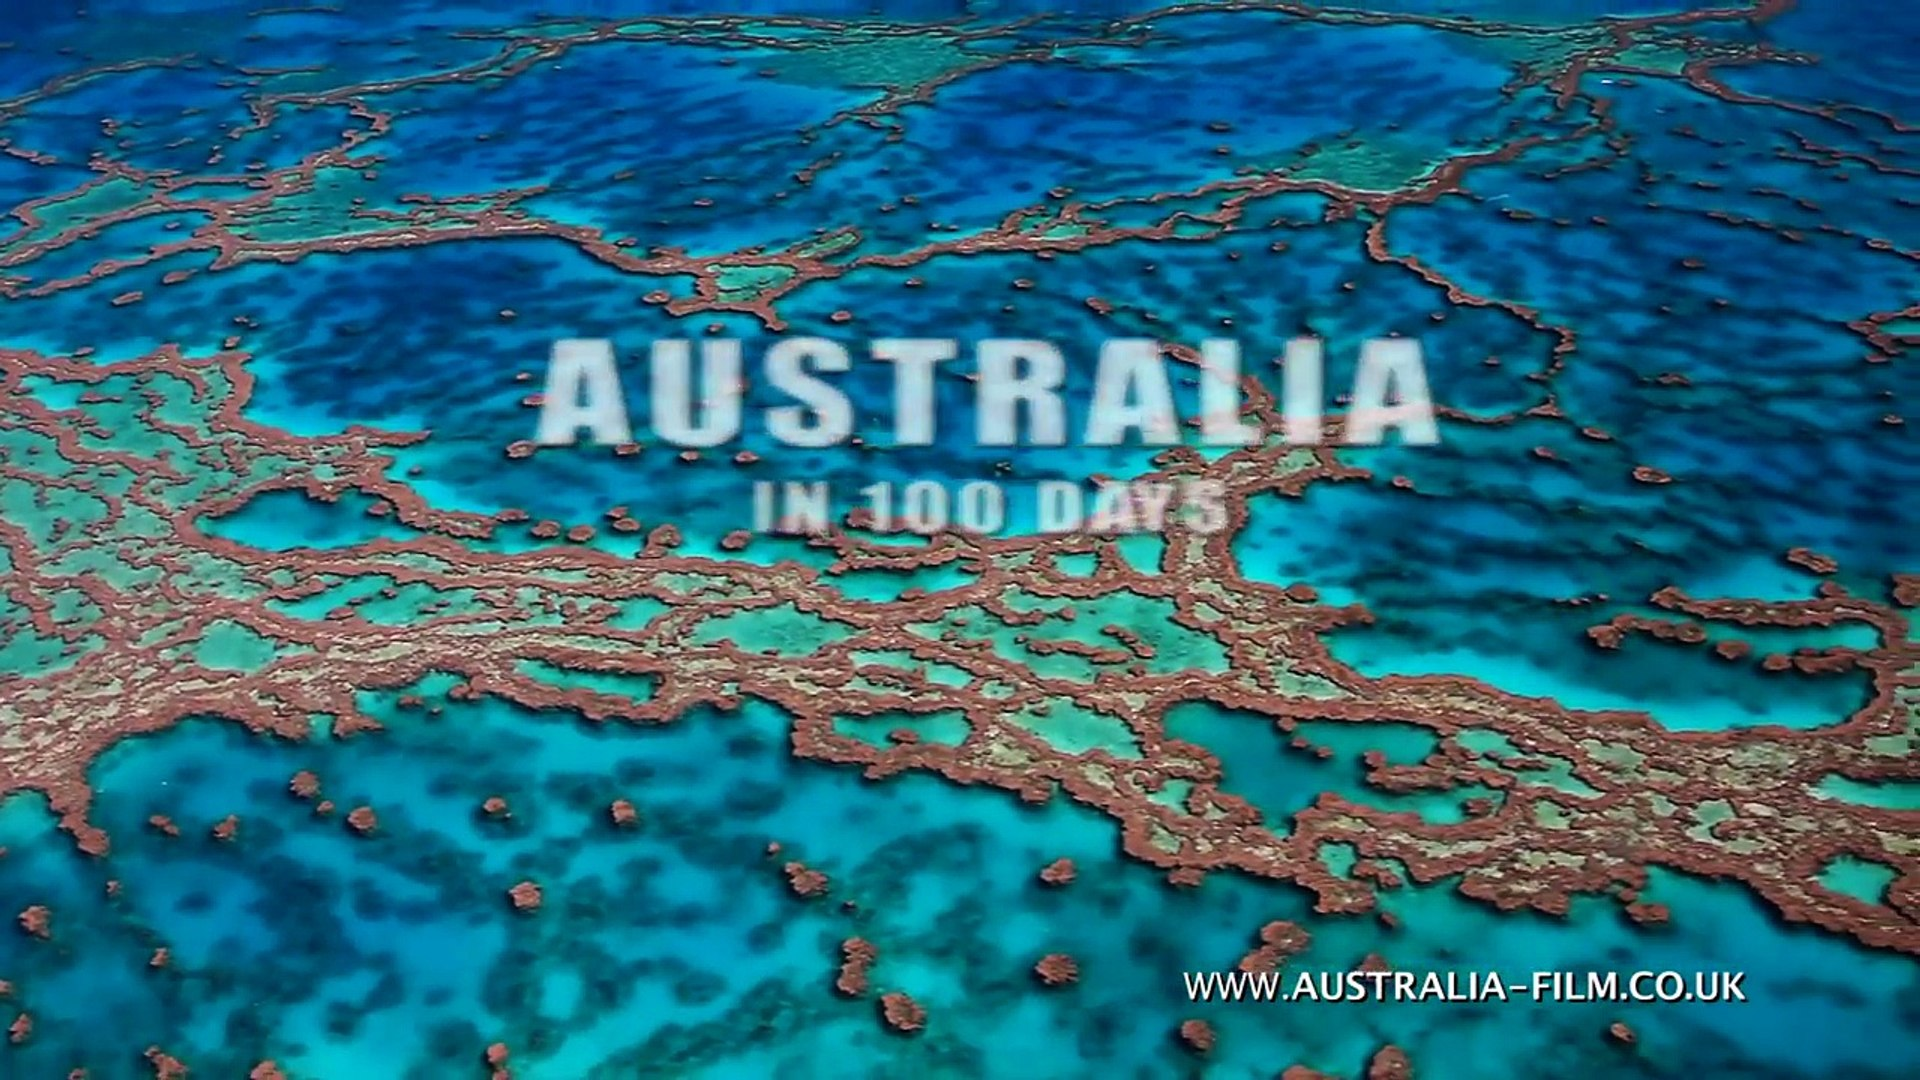 Australia in 100 days - out now on DVD and Bluray - Trailer - english - travel documentary